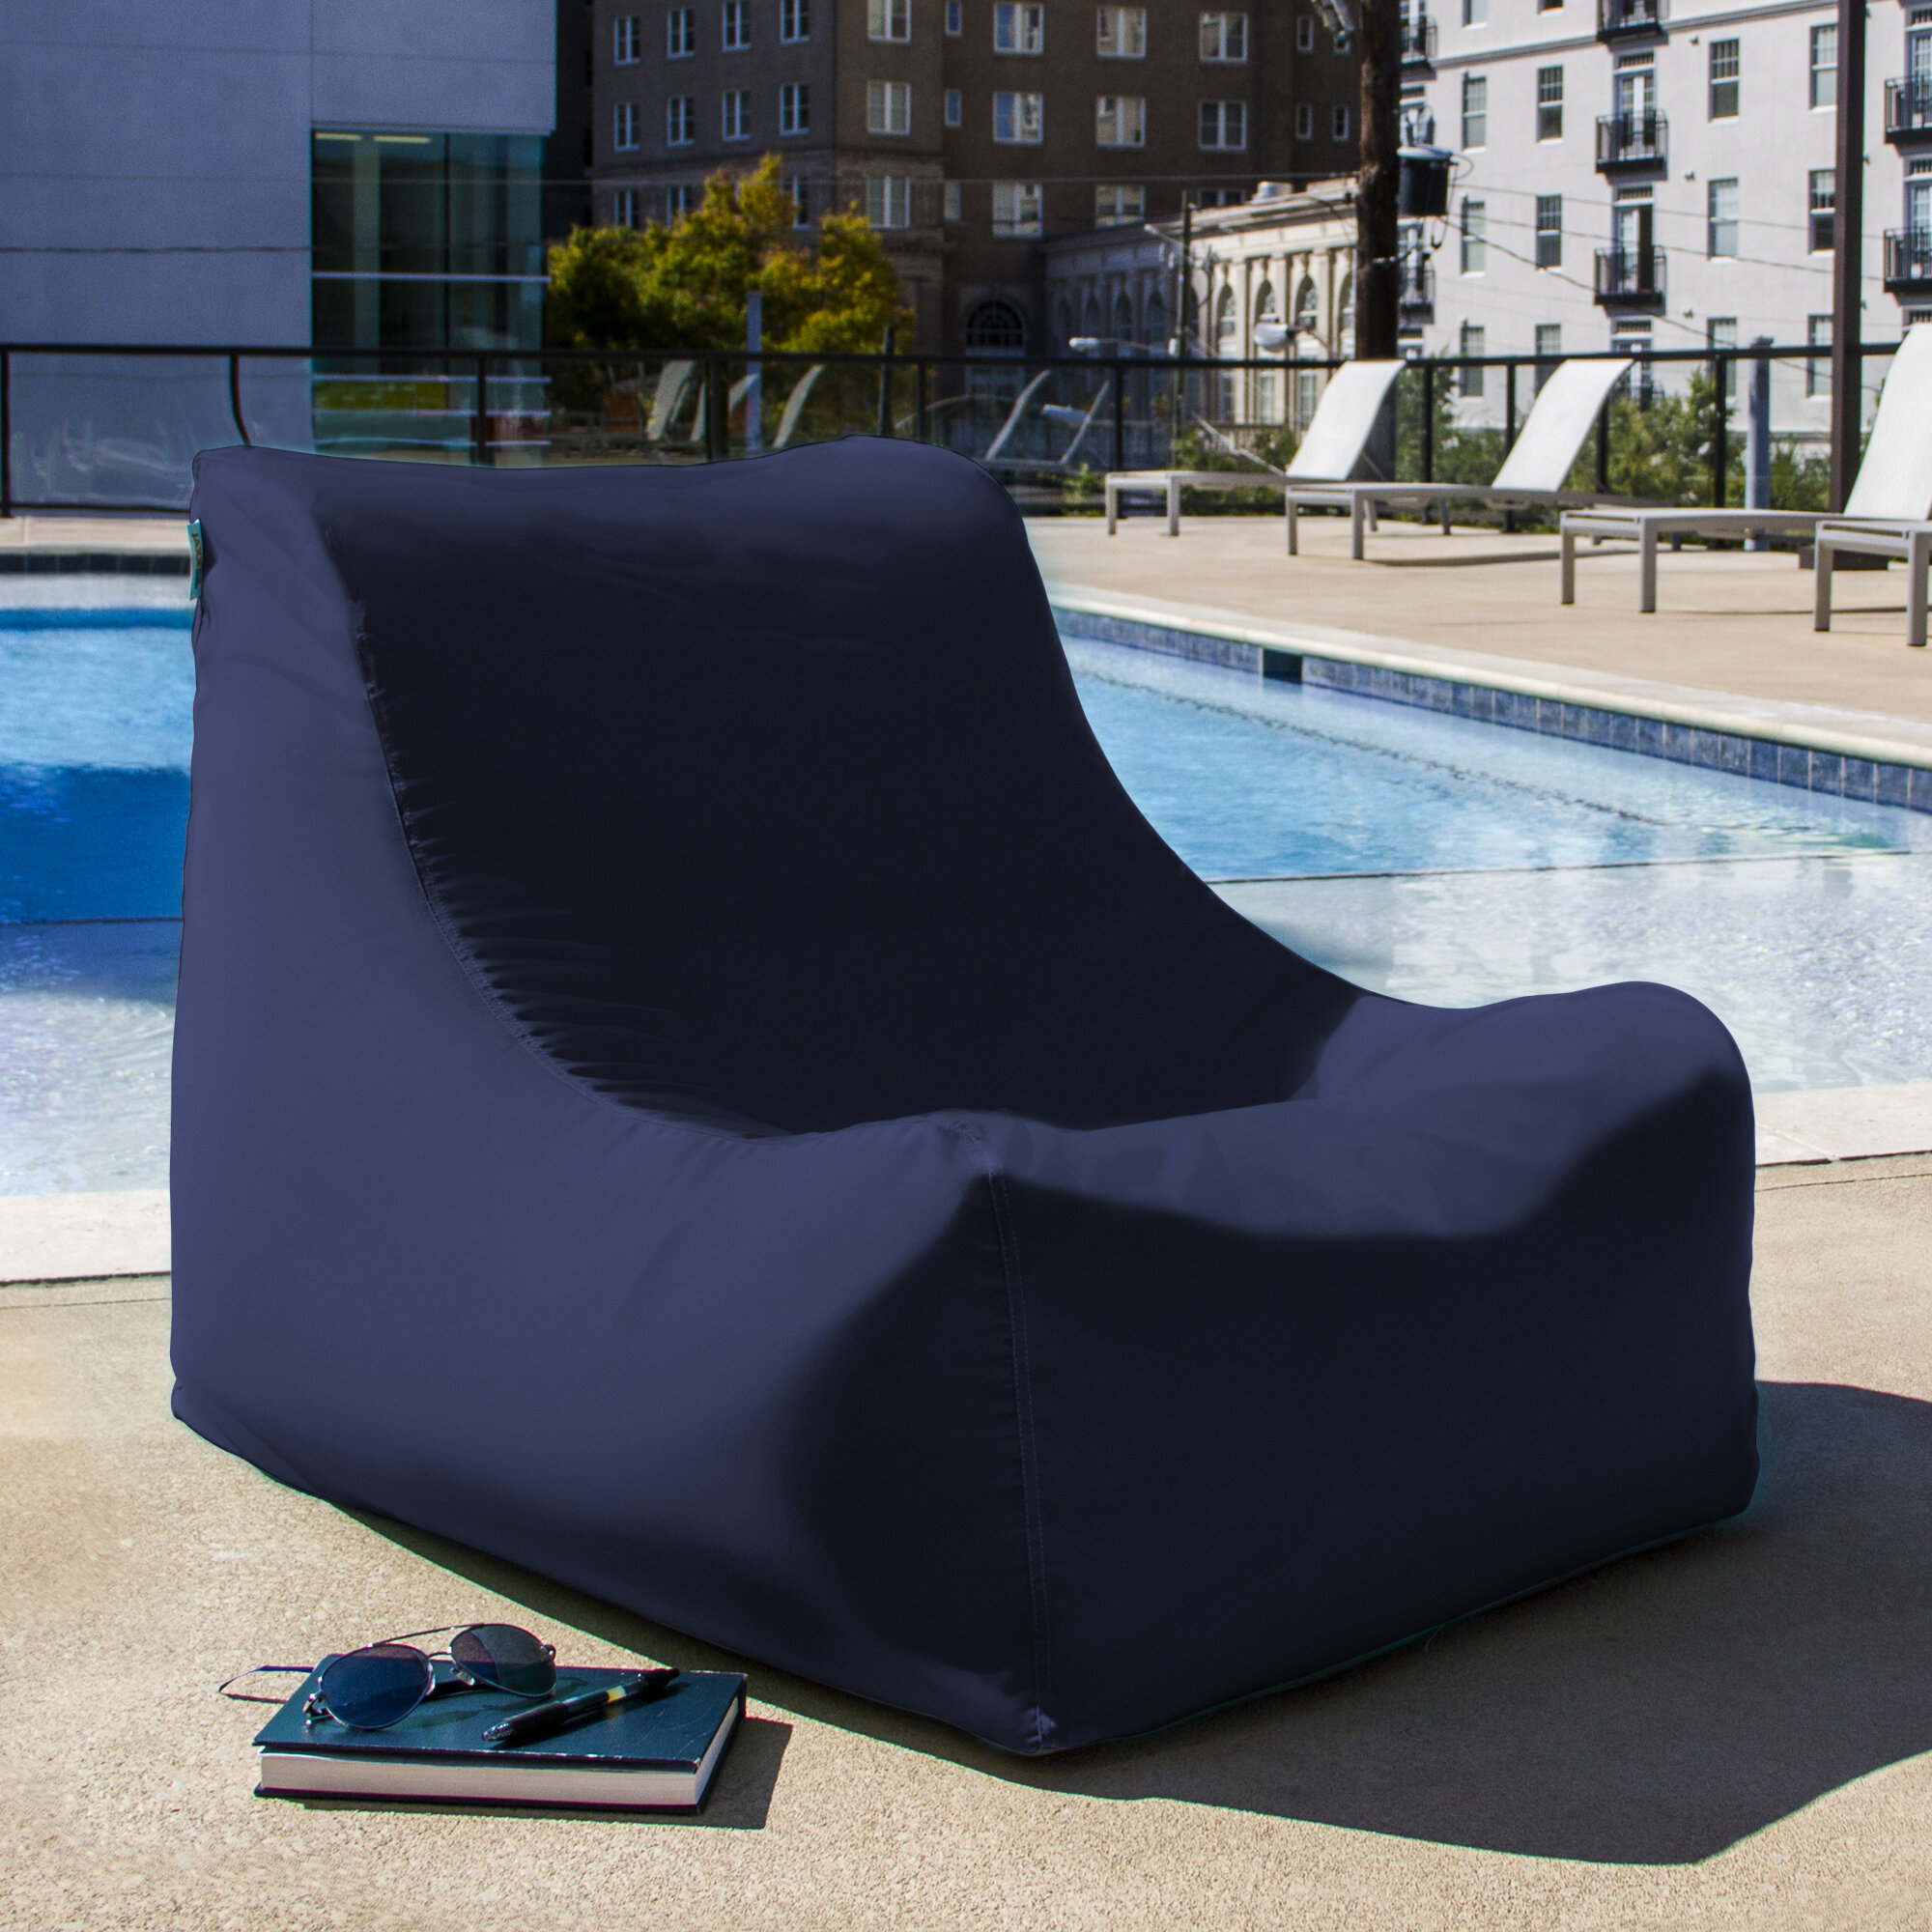 Admirable Ponce Outdoor Medium Bean Bag Lounger Caraccident5 Cool Chair Designs And Ideas Caraccident5Info